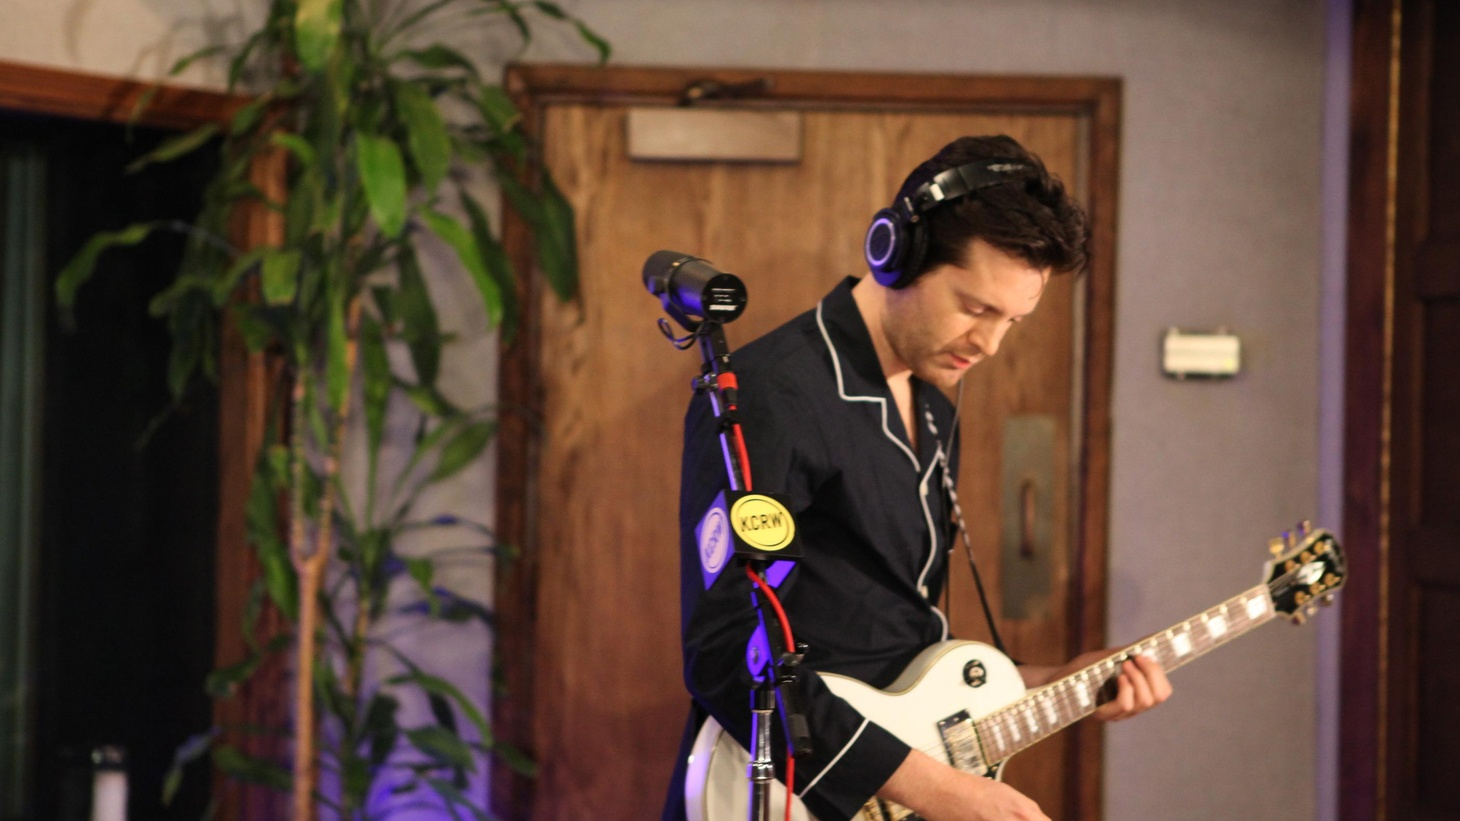 LA-based musician Mayer Hawthorne wore pajamas for his recent appearance on Morning Becomes Eclectic. But, beyond that, he turned in a great live performance...